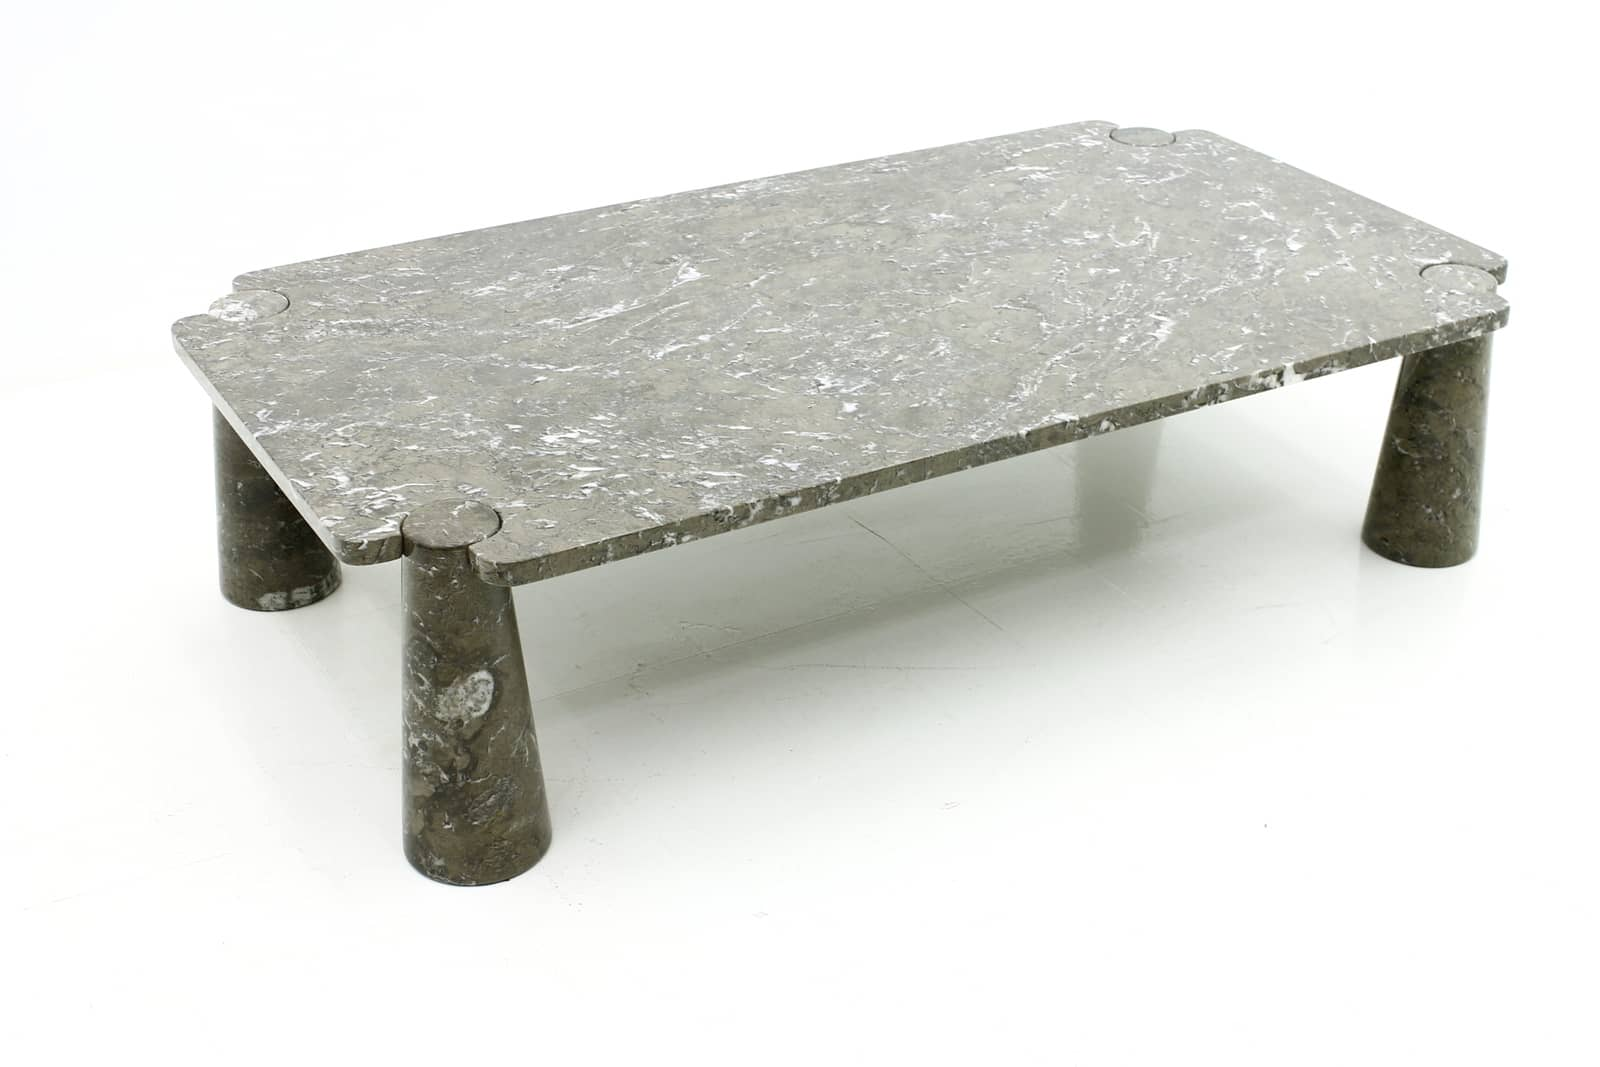 Angelo mangiarotti, marble, table, coffee table, italy 1960s, 70s